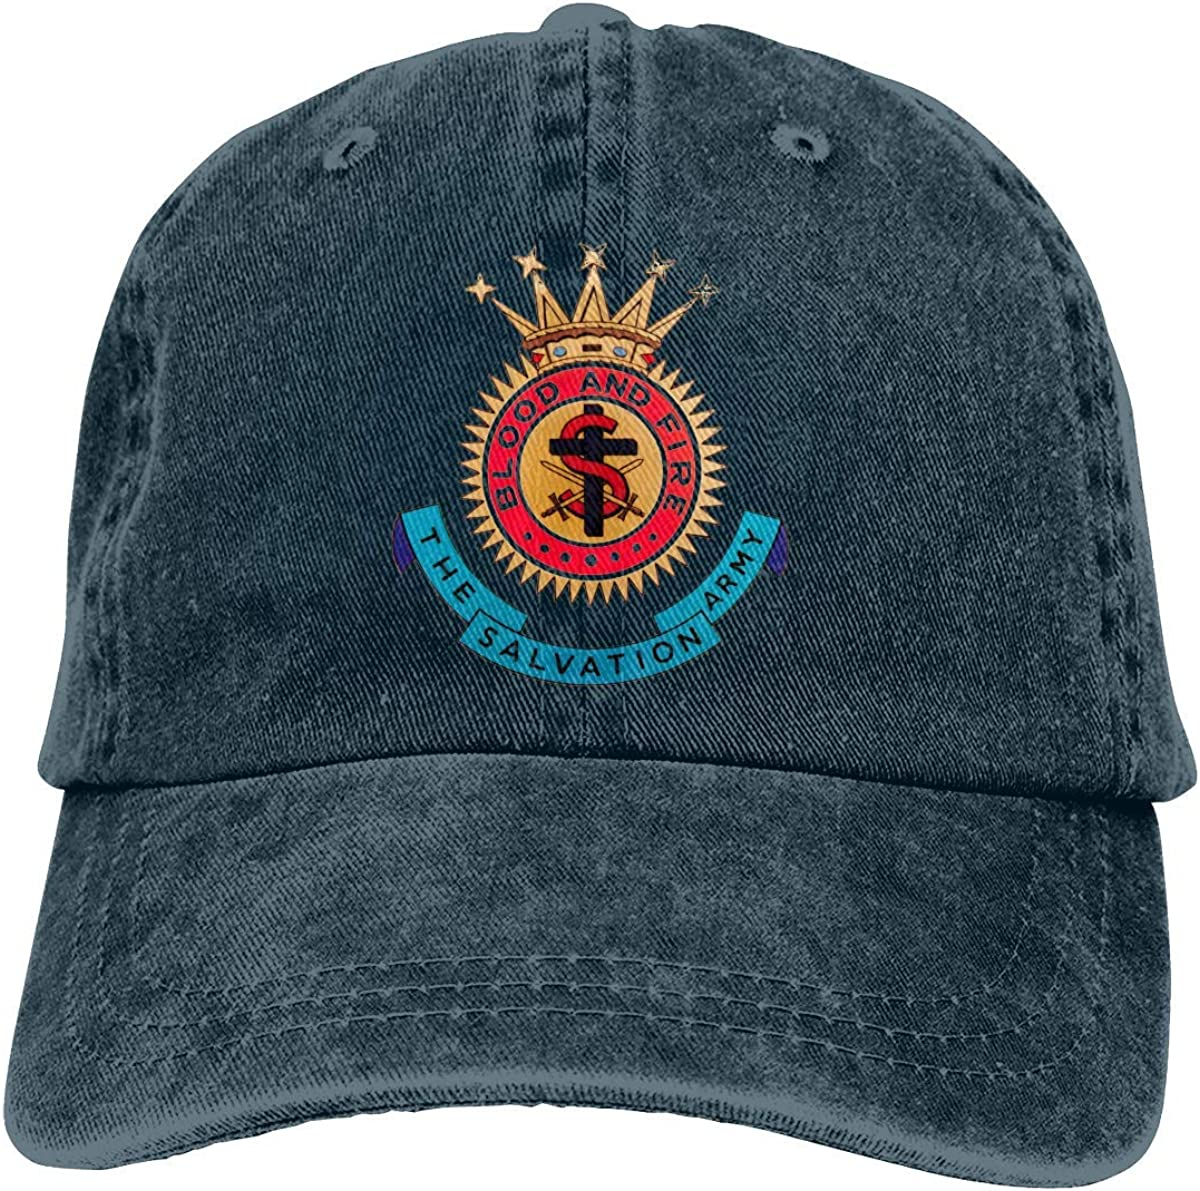 Cybil Home US America The Salvation Army Crest Denim Hats Washed Retro Baseball Cap Dad Hat